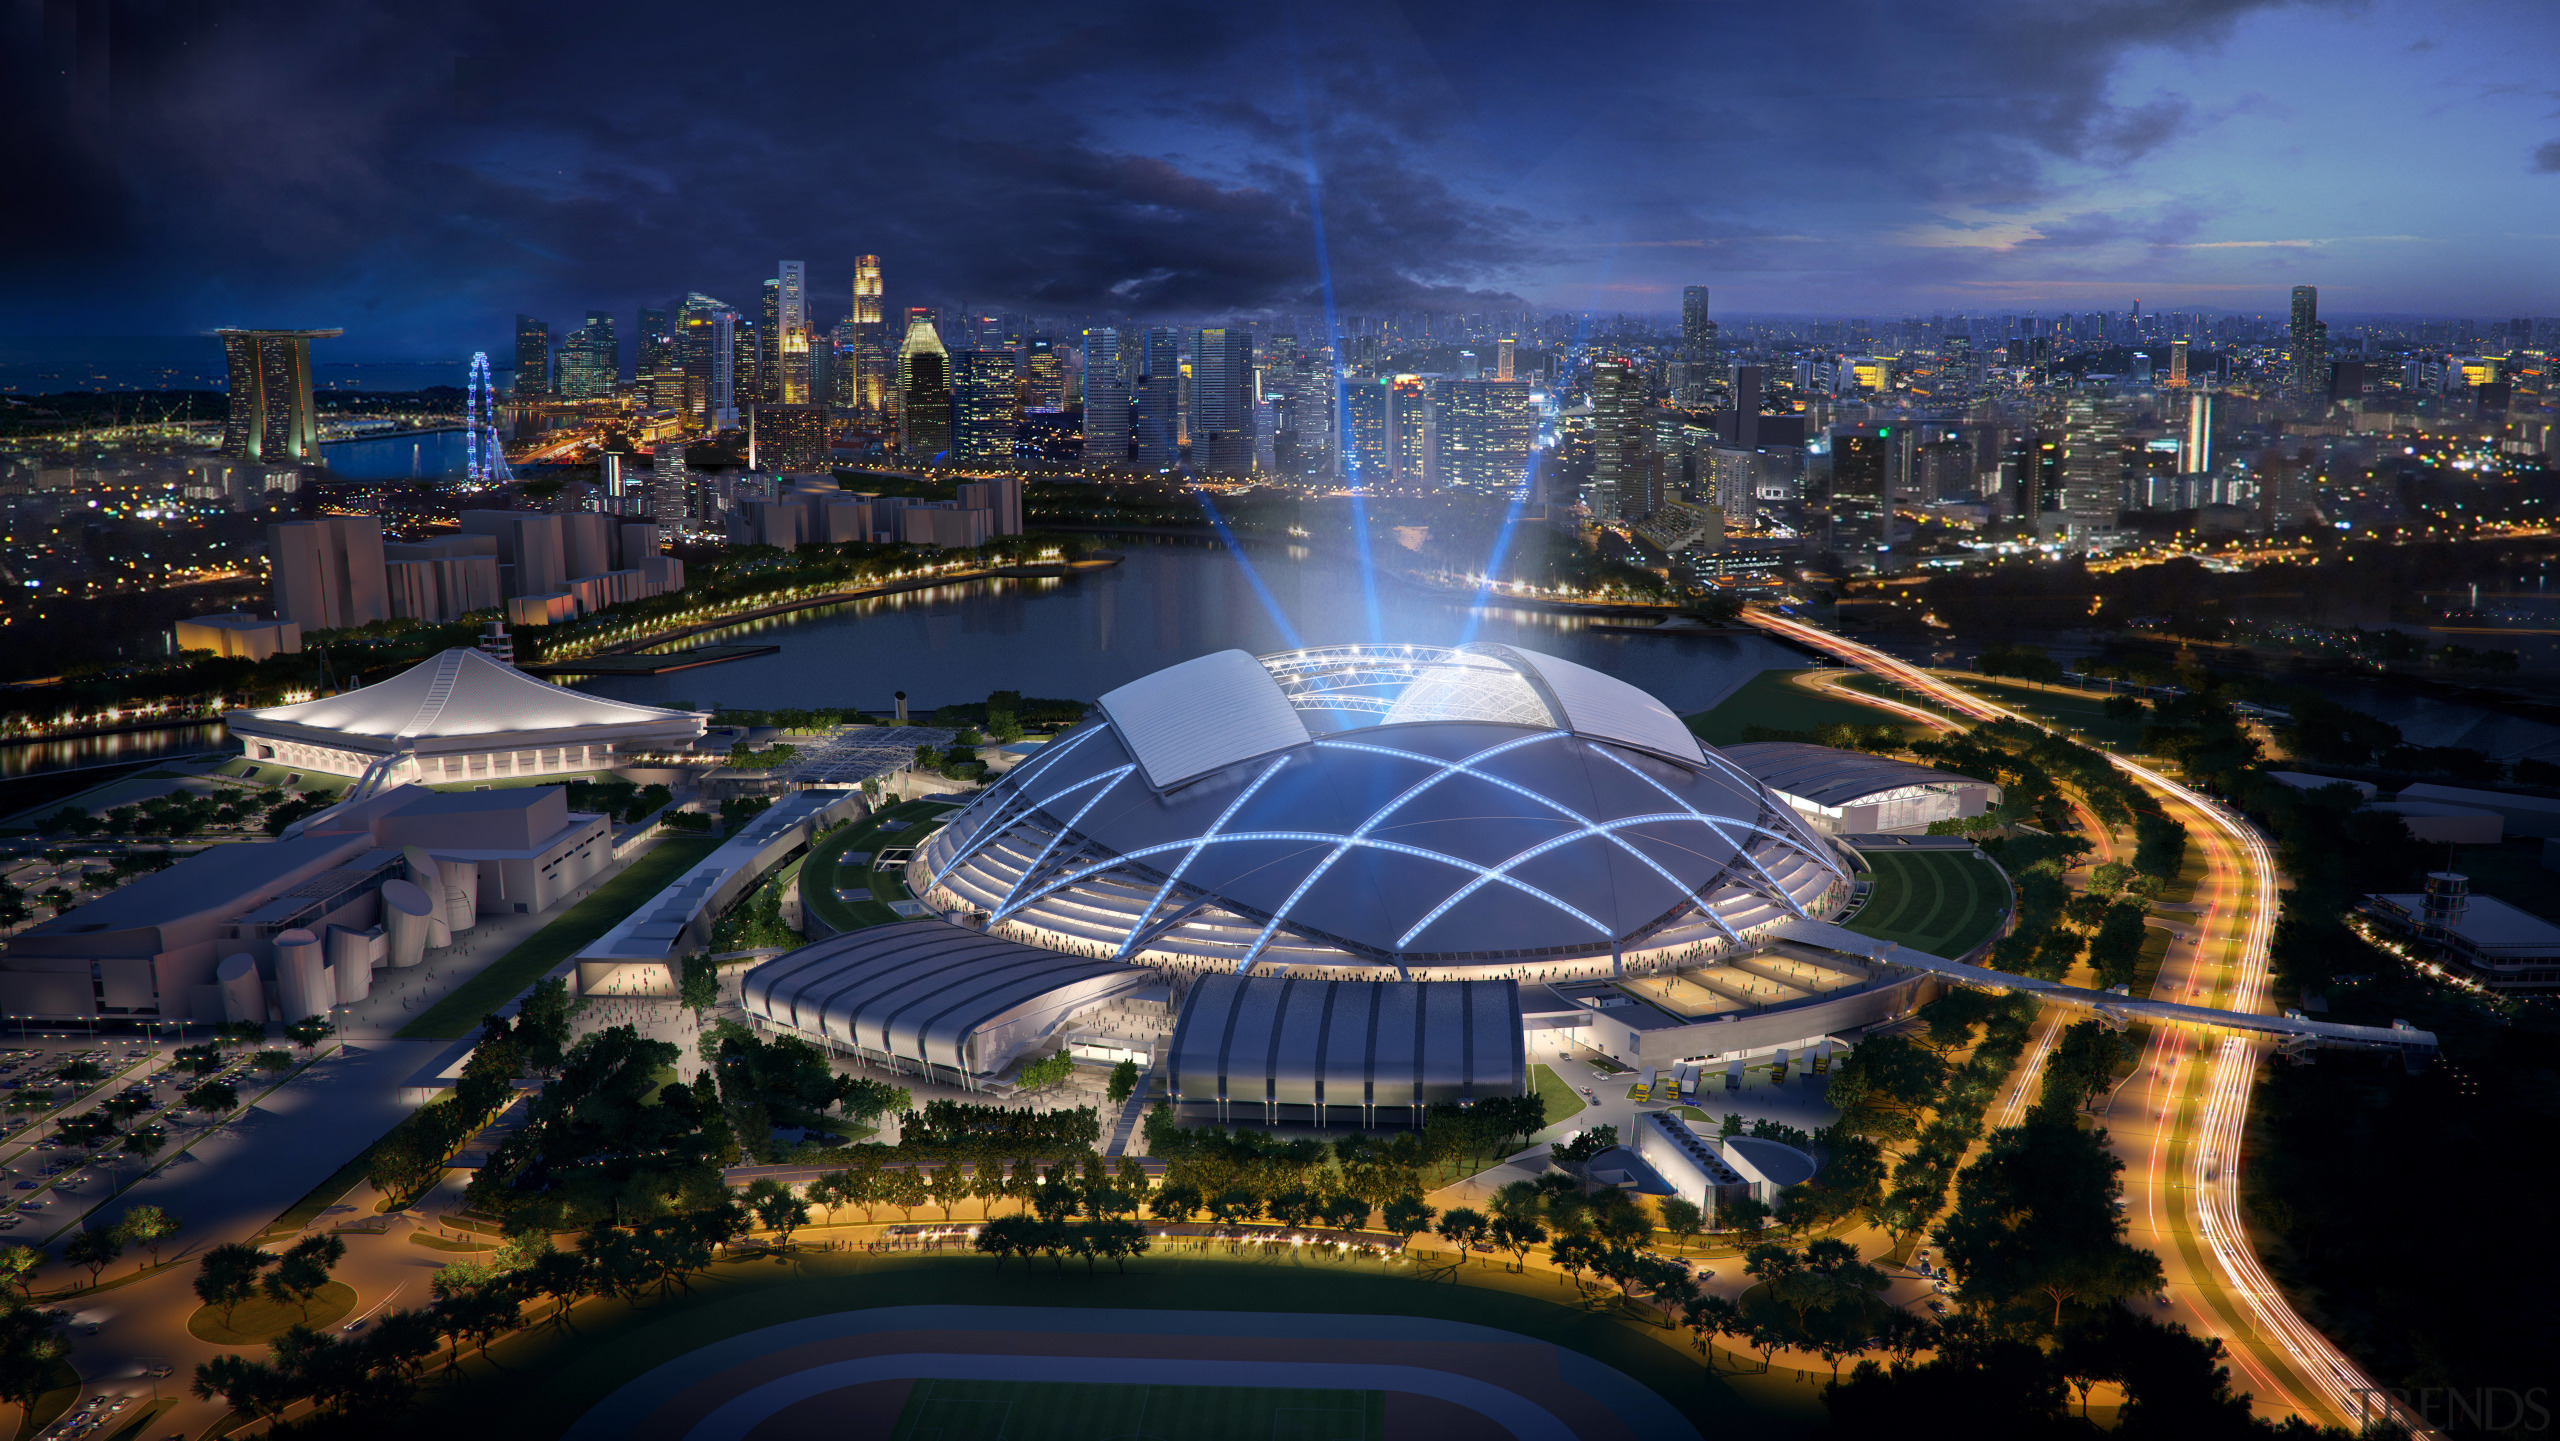 The new Singapore Sports Hub is a dramatic aerial photography, bird's eye view, city, cityscape, downtown, landmark, metropolis, metropolitan area, night, reflection, sky, skyline, sport venue, structure, tourist attraction, urban area, urban design, water, water feature, water resources, blue, black